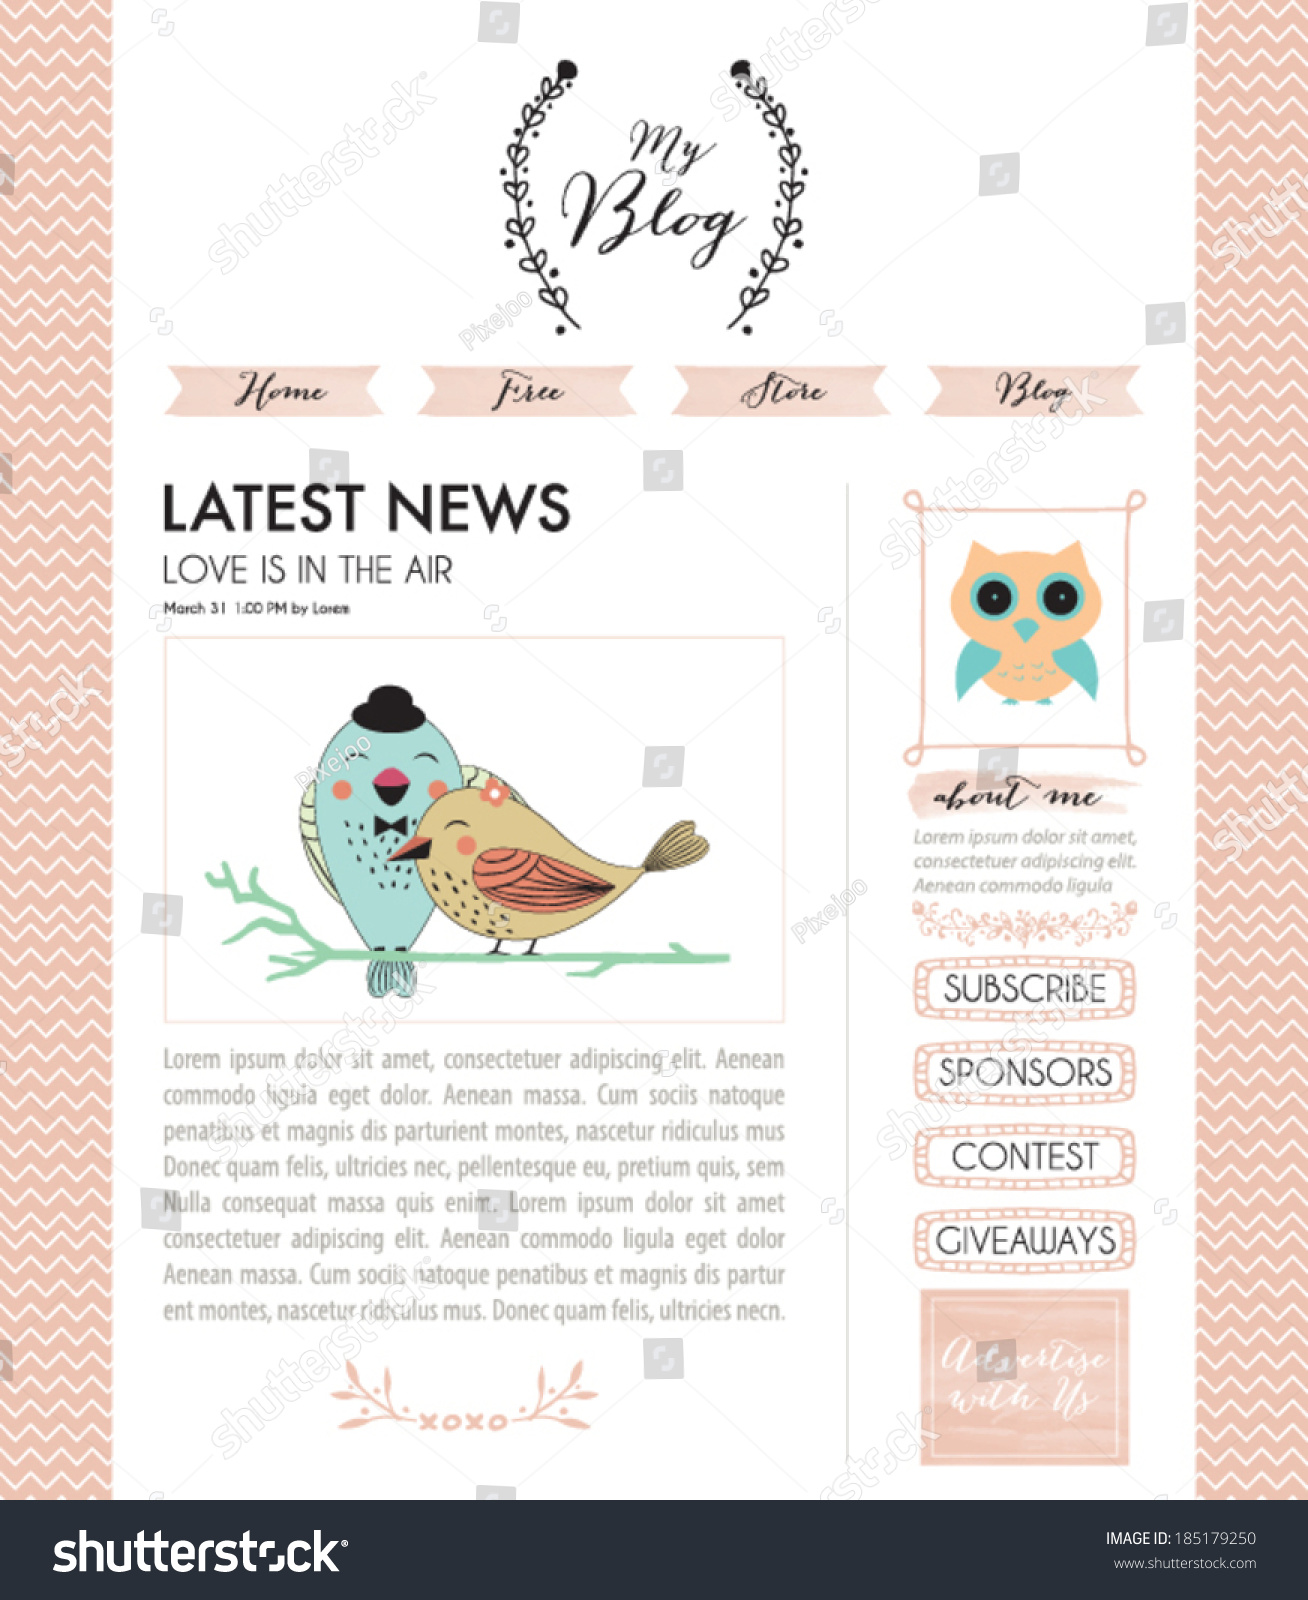 Blog Template Design Vector Stock Vector 185179250 - Shutterstock